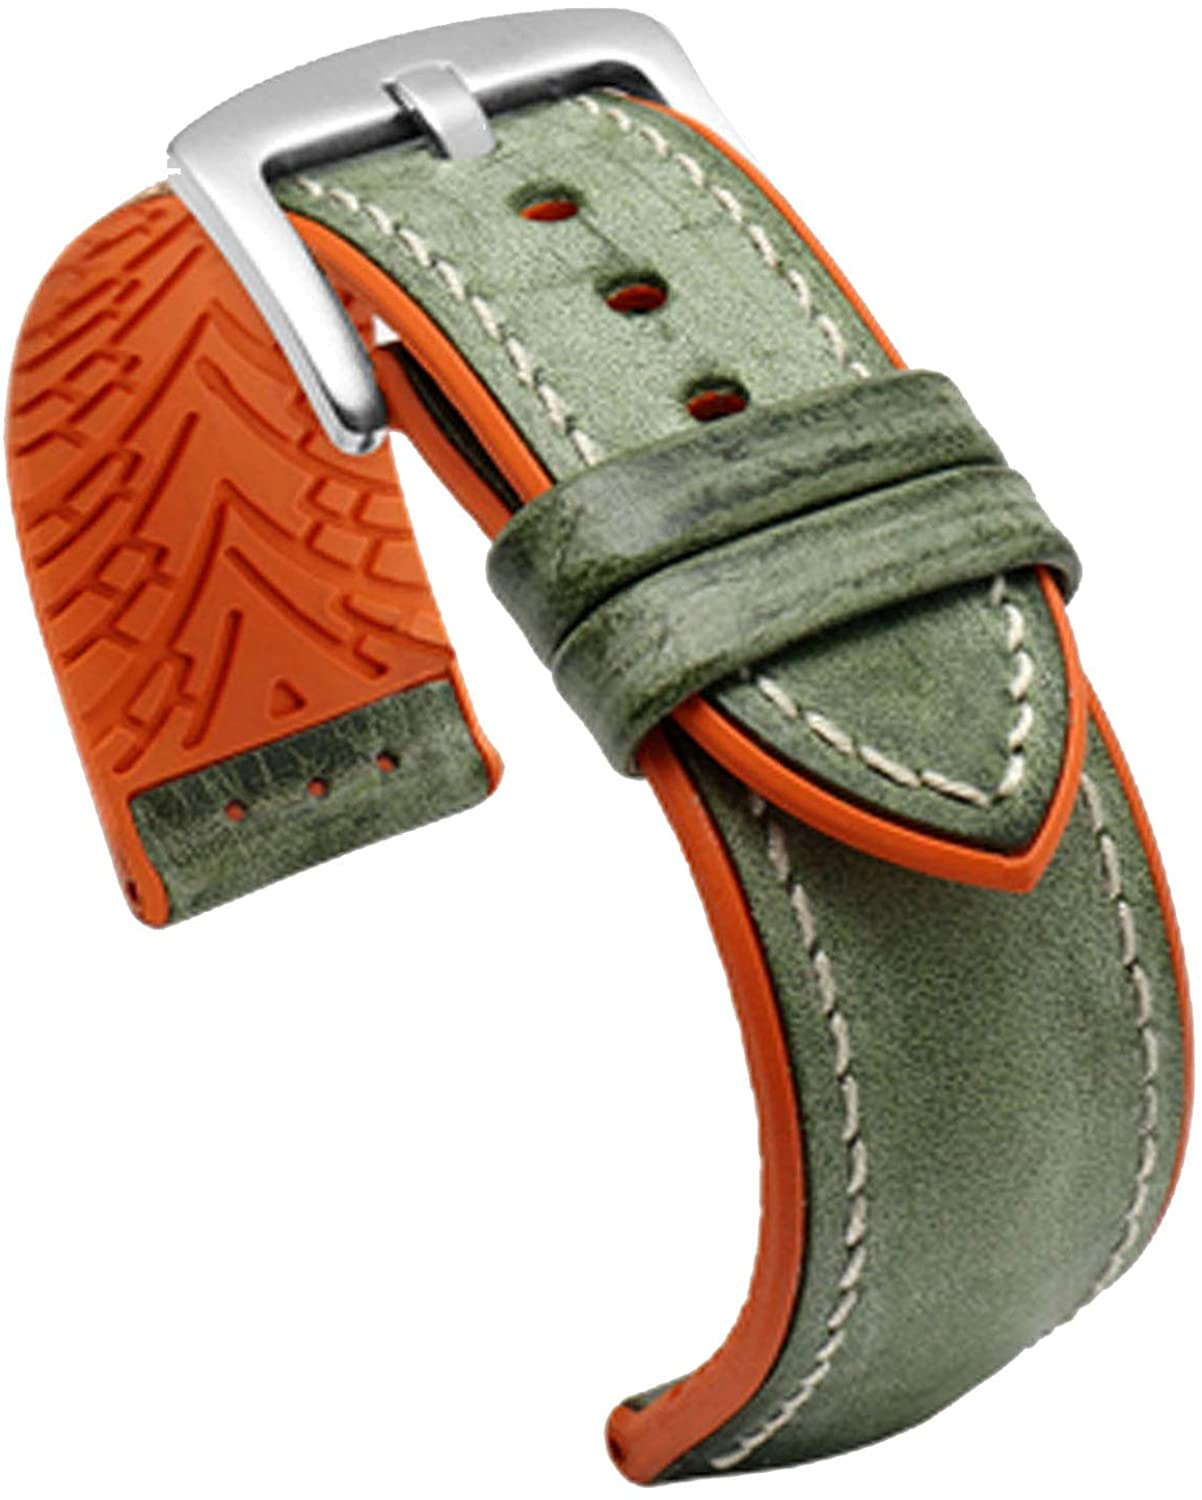 TIME4BEST Strap 19mm 20mm 21mm 22mm 23mm 24mm Distressed Green Leather Watch Band Strap Orange Rubber Pad Watch Band